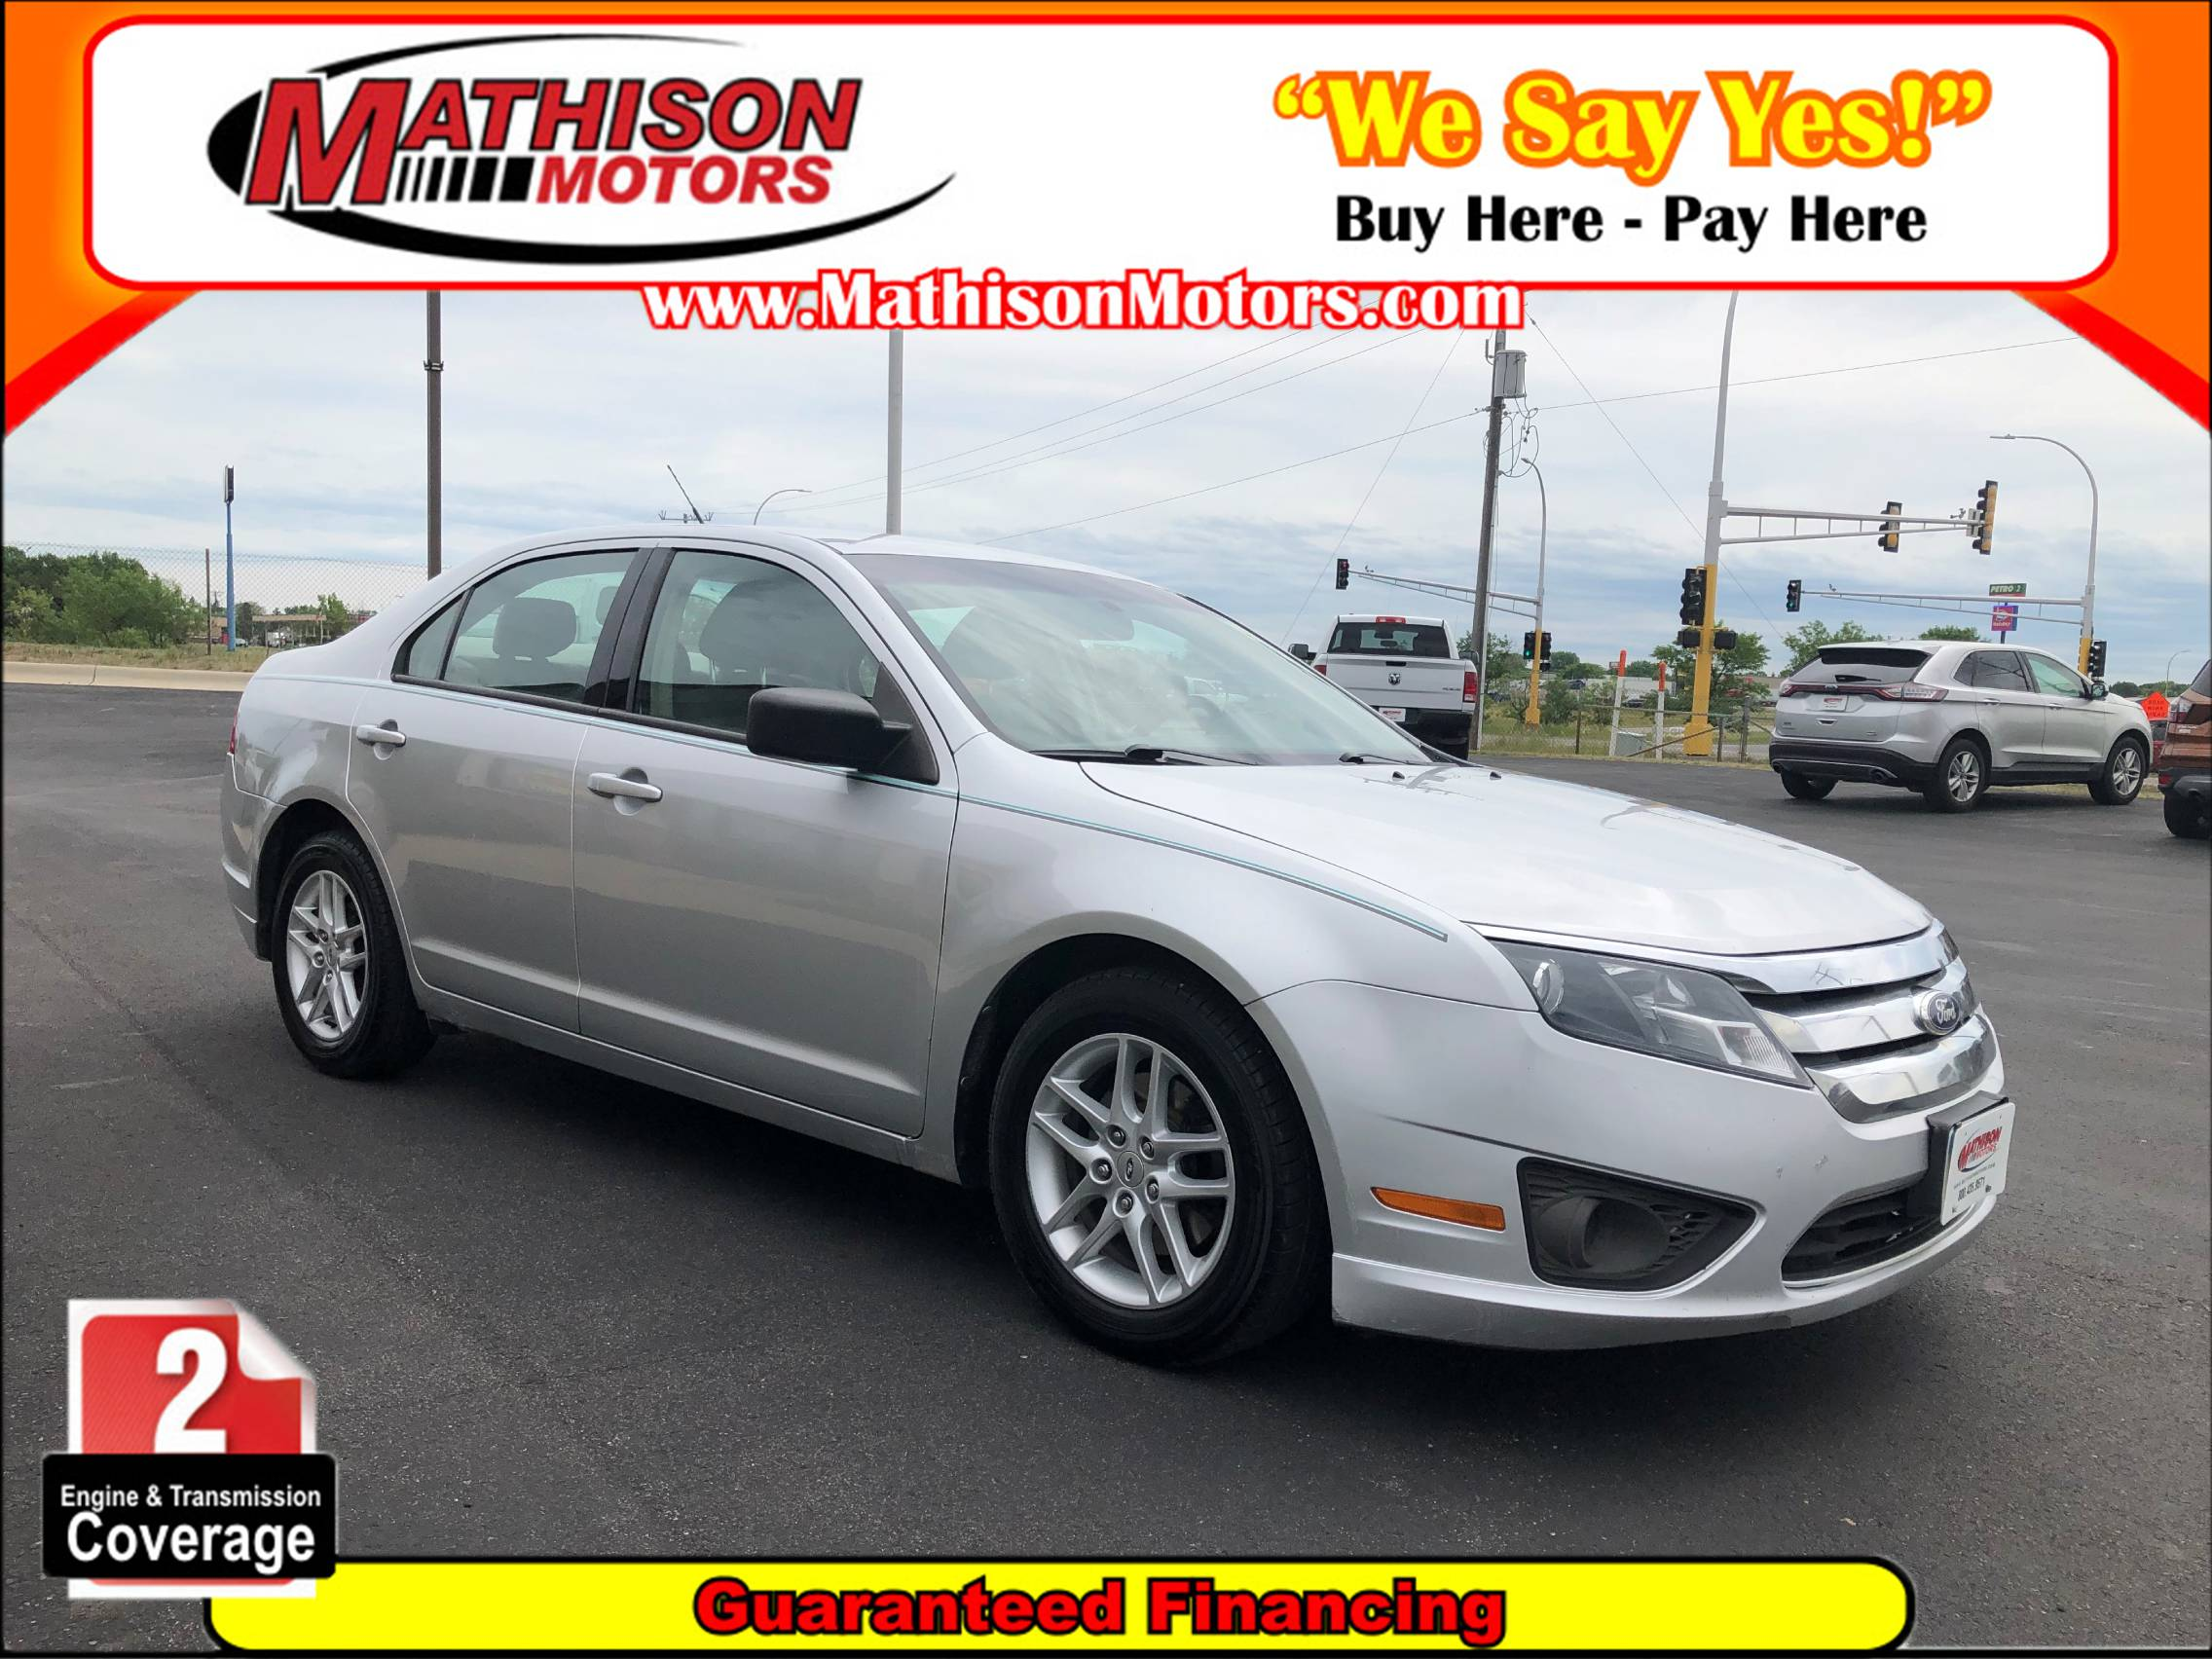 Used FORD FUSION 2011 MATHISON S